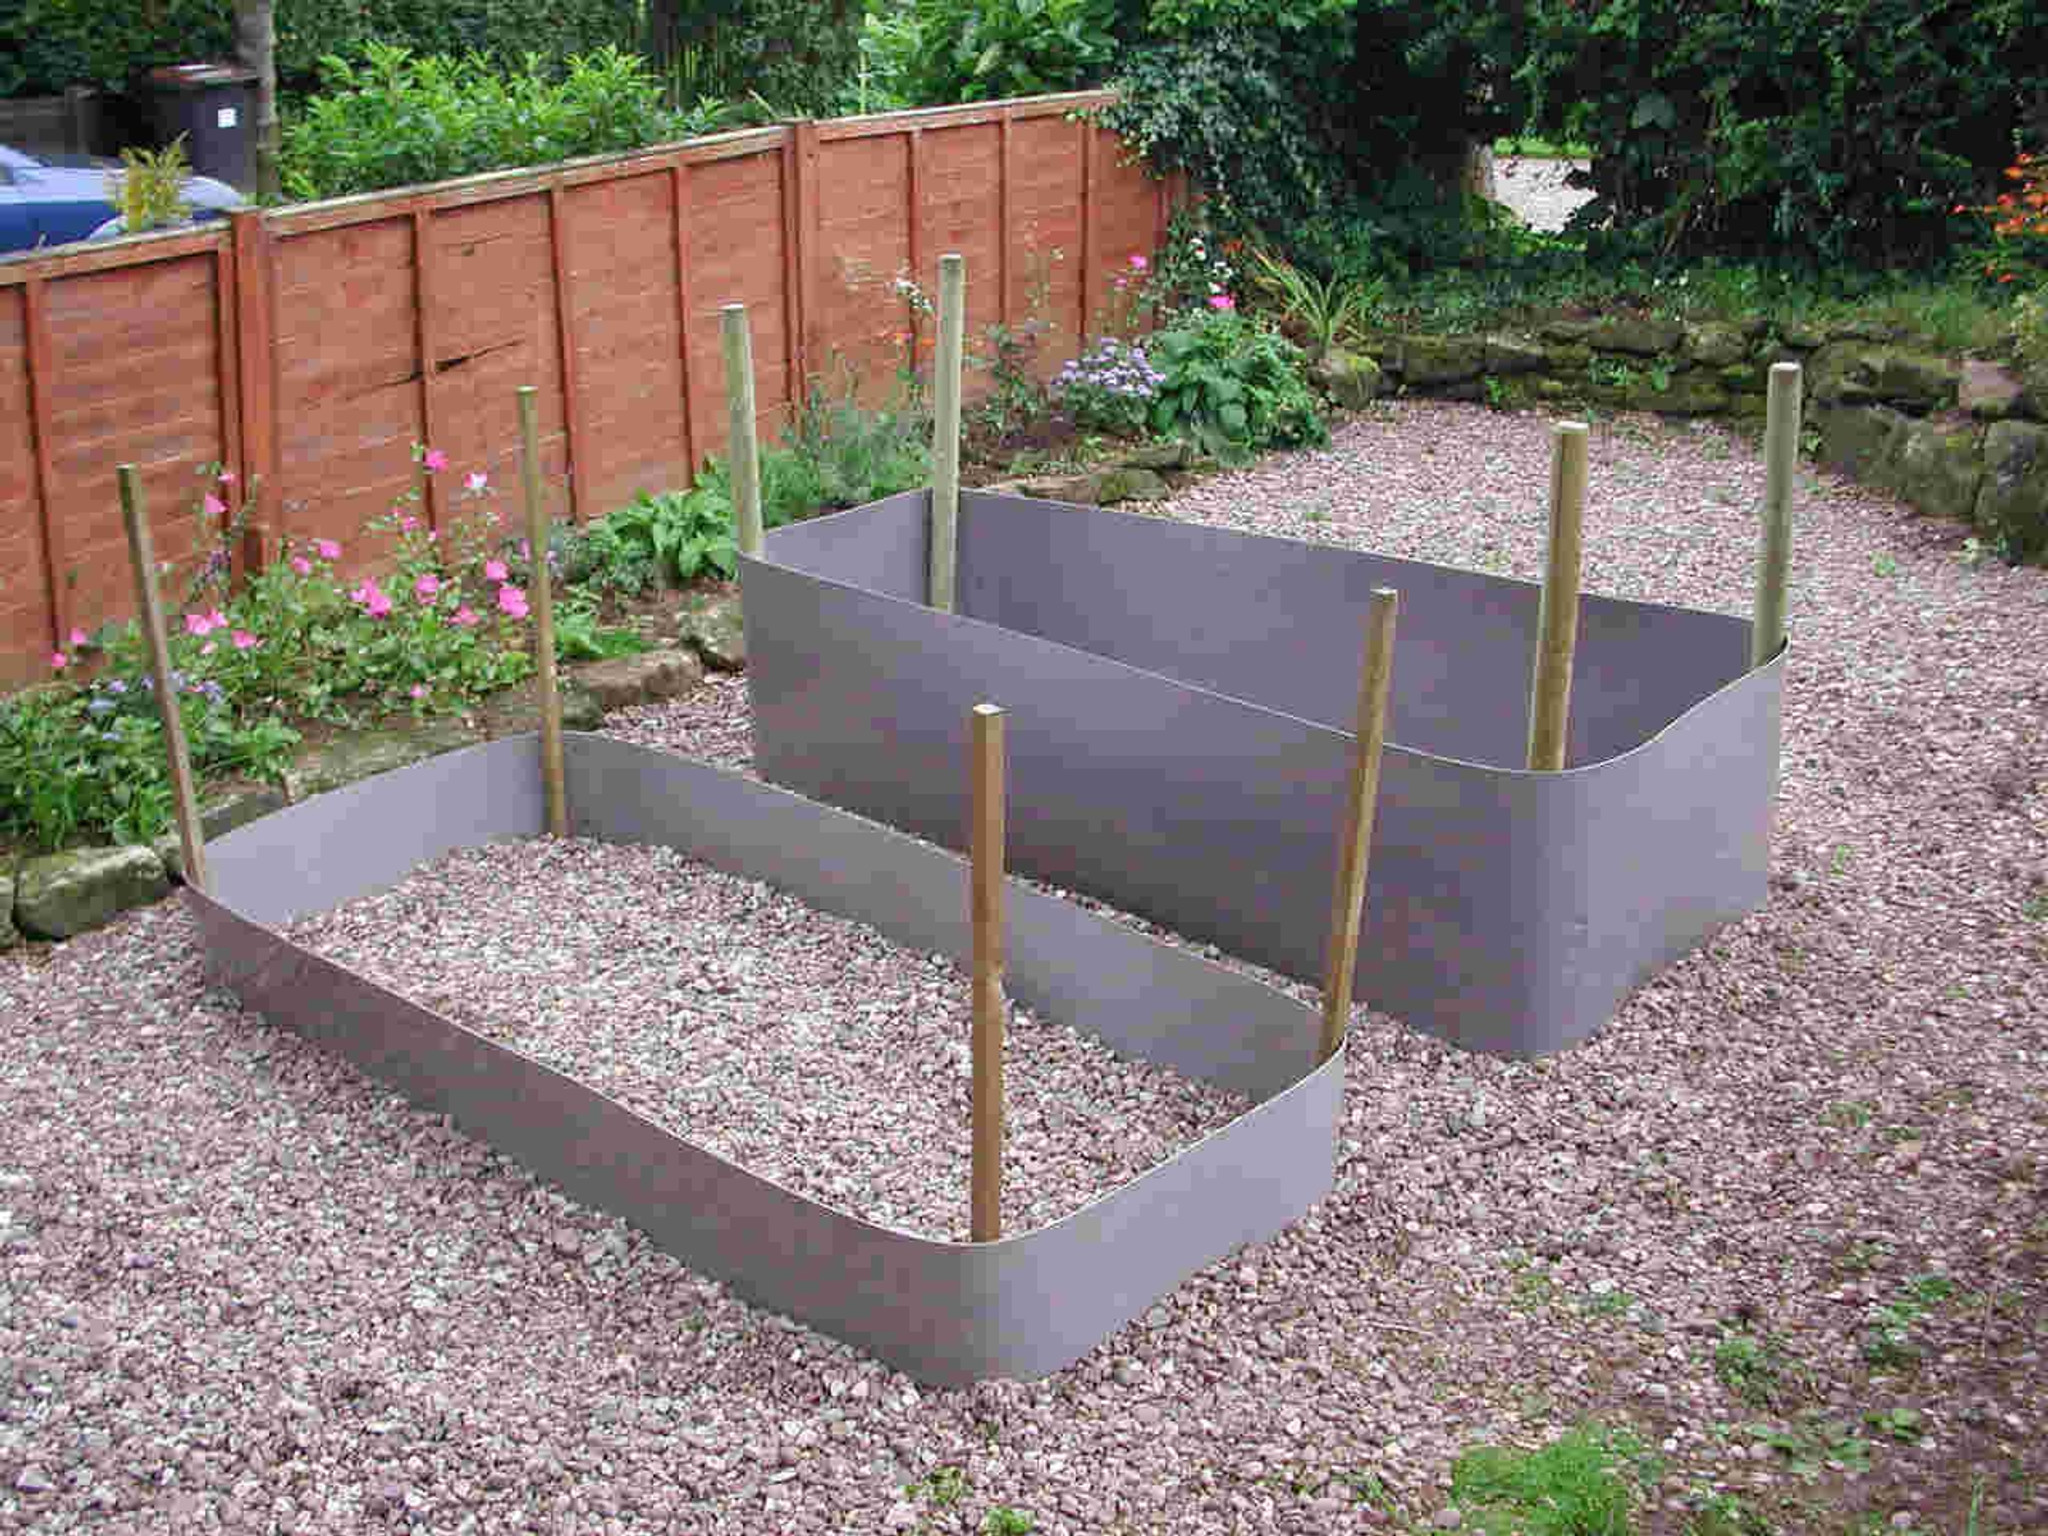 Create your own raised beds